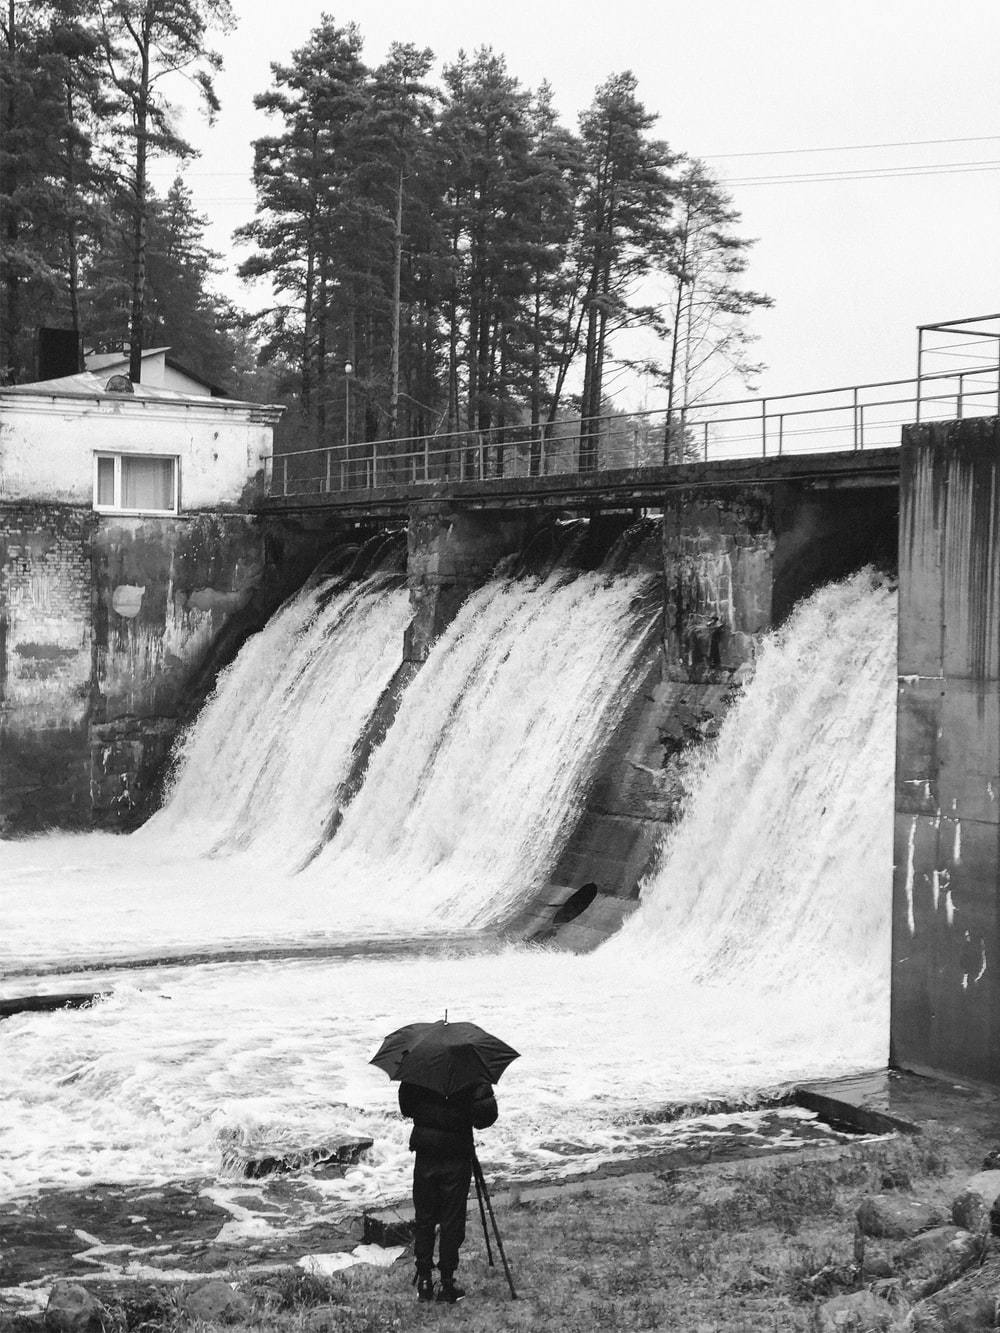 grayscale photo of person under umbrella in front of dam